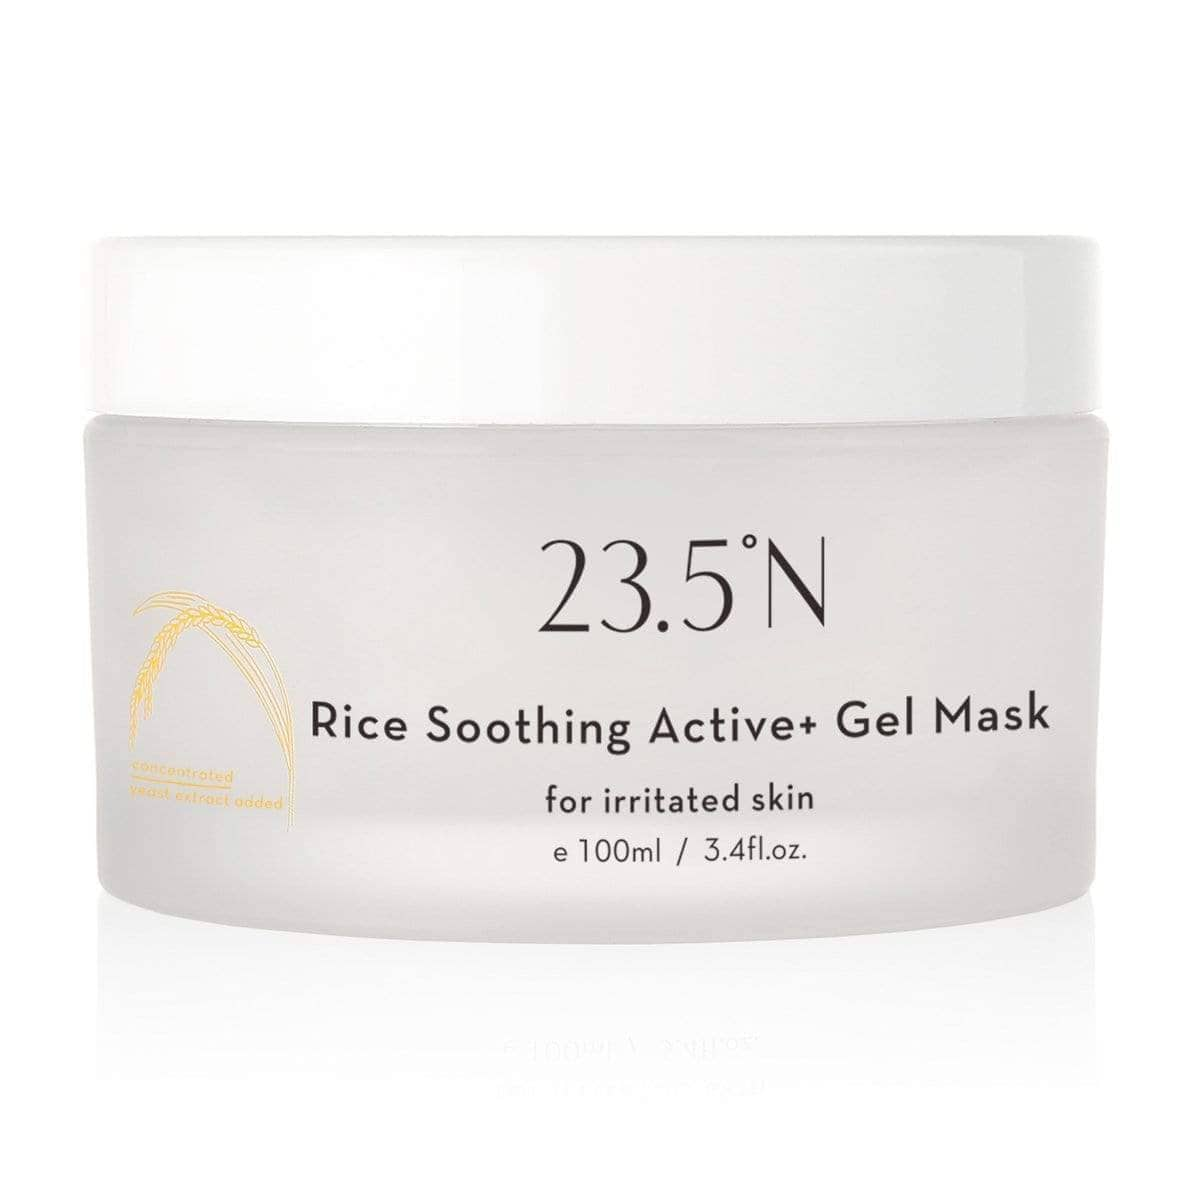 23.5N Rice Soothing Active+ Gel Mask